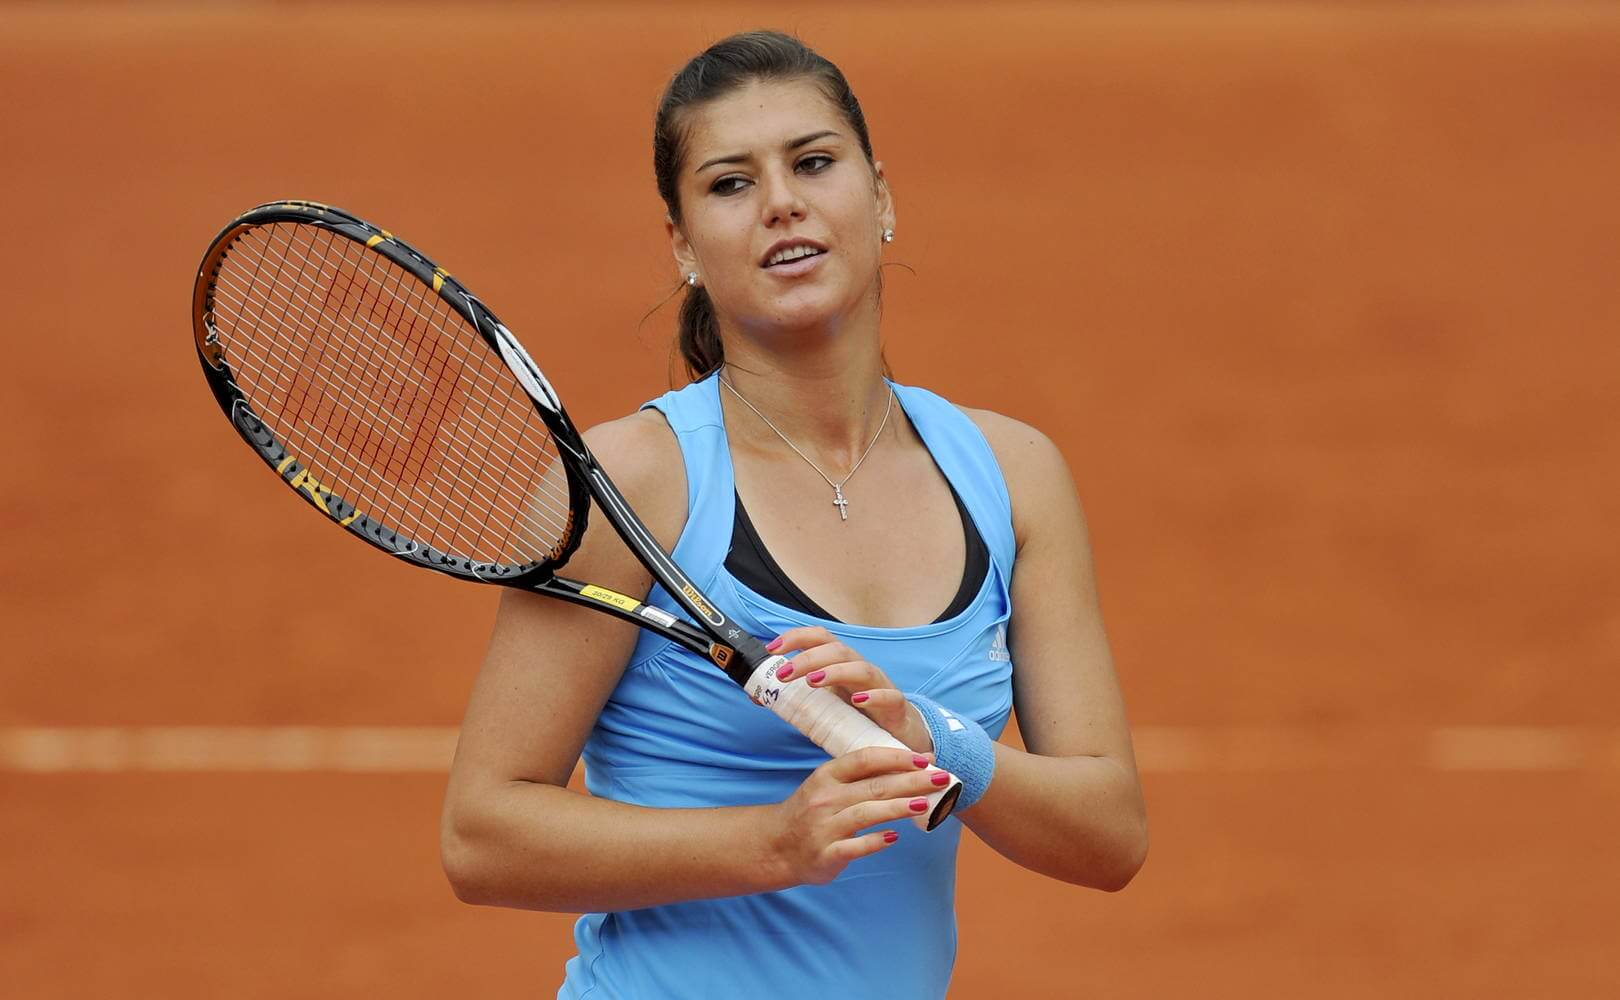 Sorana Cirstea hot picture